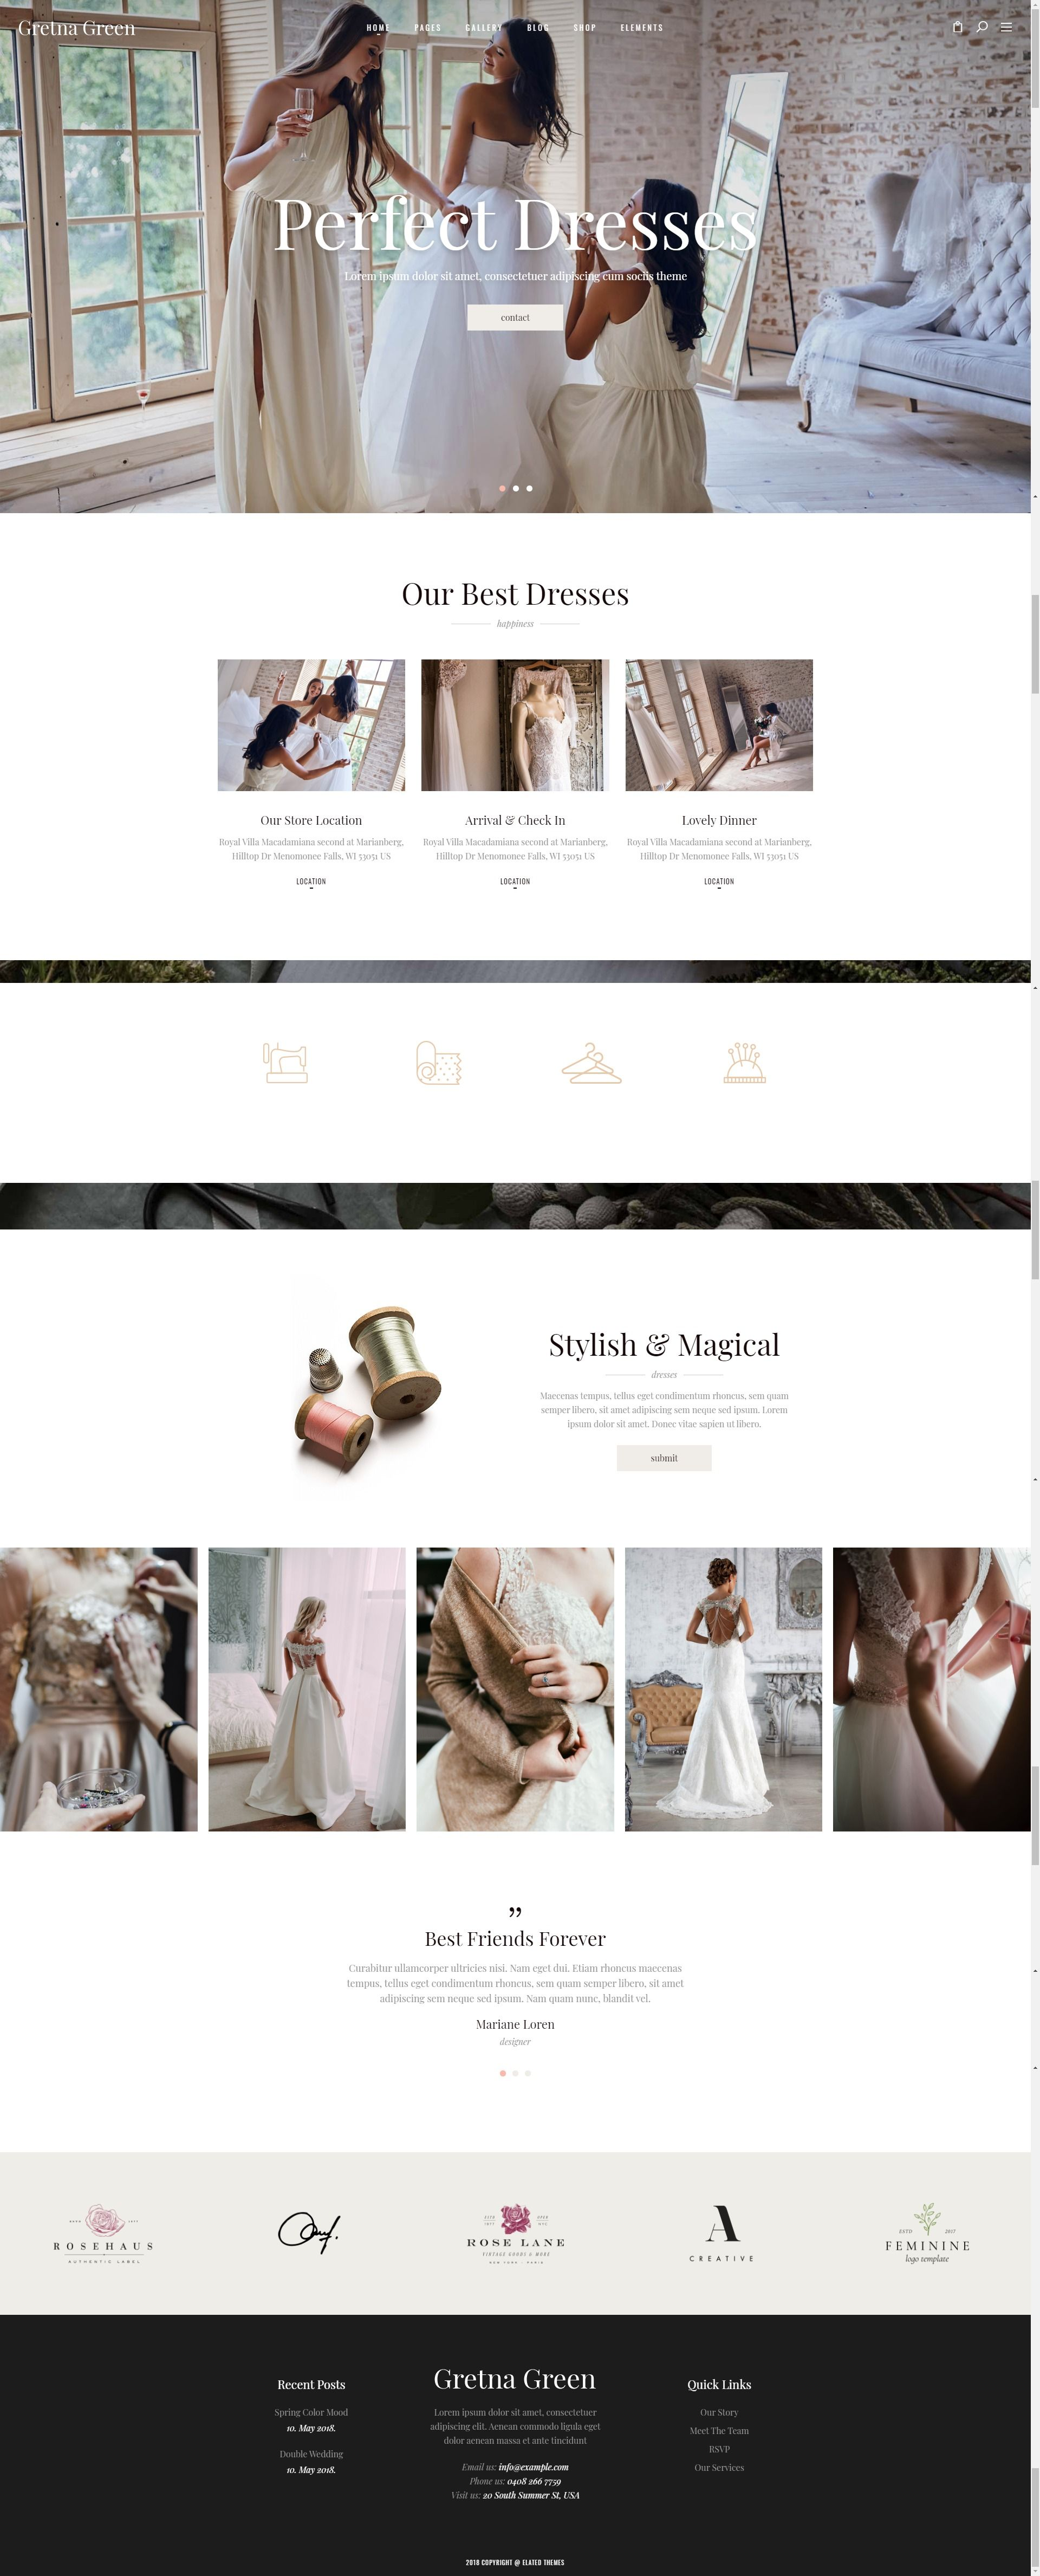 Gretna Green Theme For Wedding Planners And Celebrations Stylelib In 2020 Gretna Green Wedding Gretna Green Wedding Planner